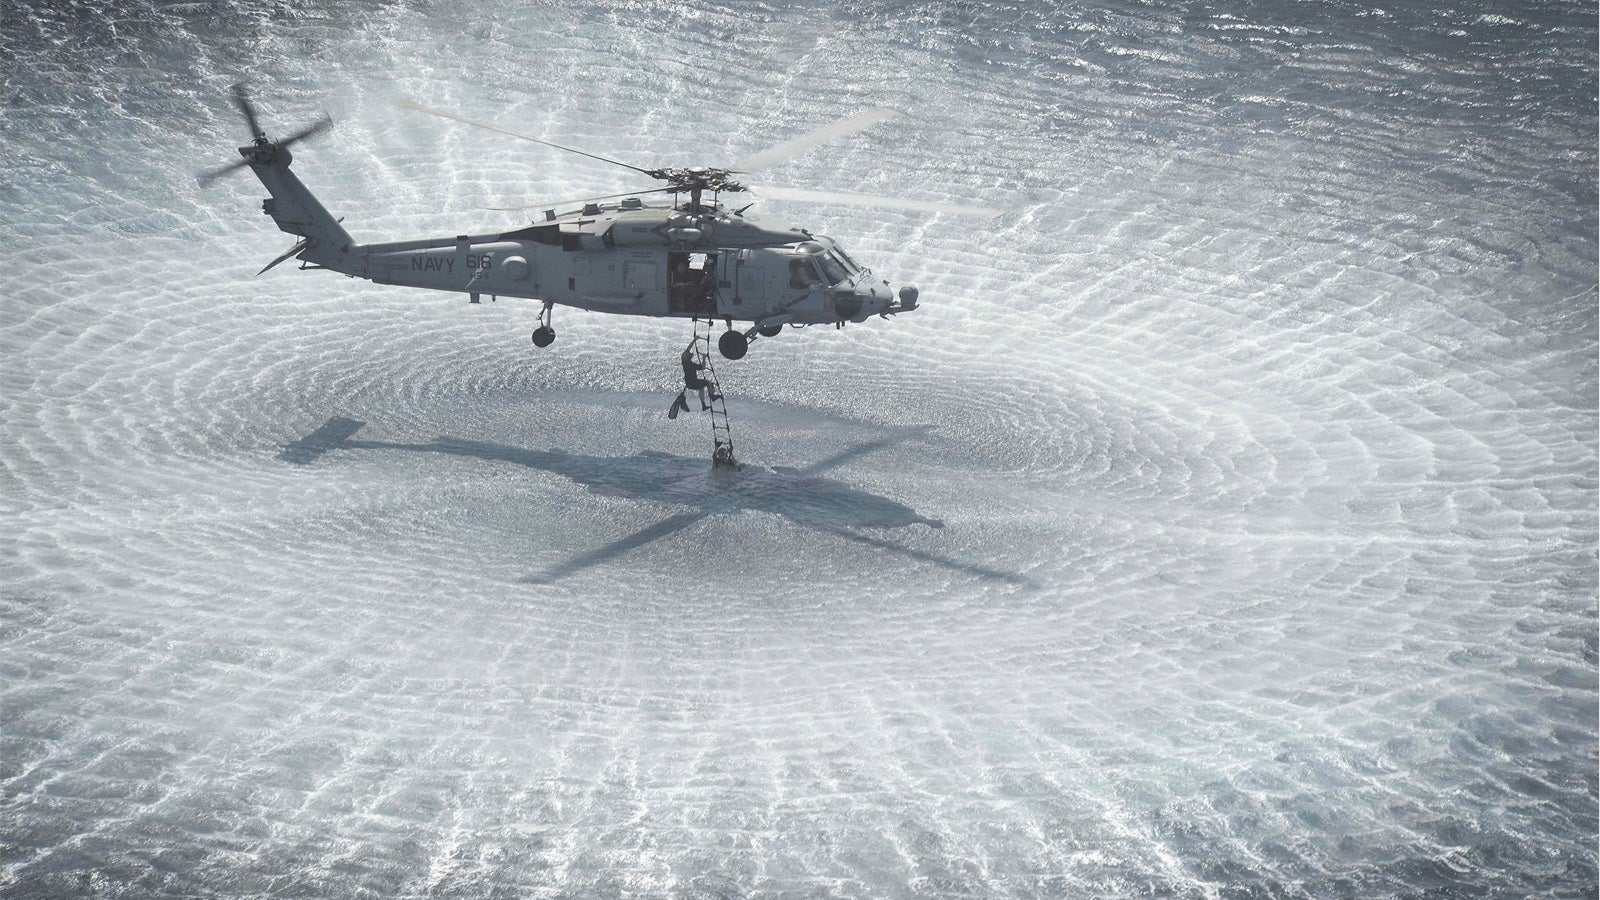 This Might Be the Perfect Photo of a Sea Hawk Helicopter